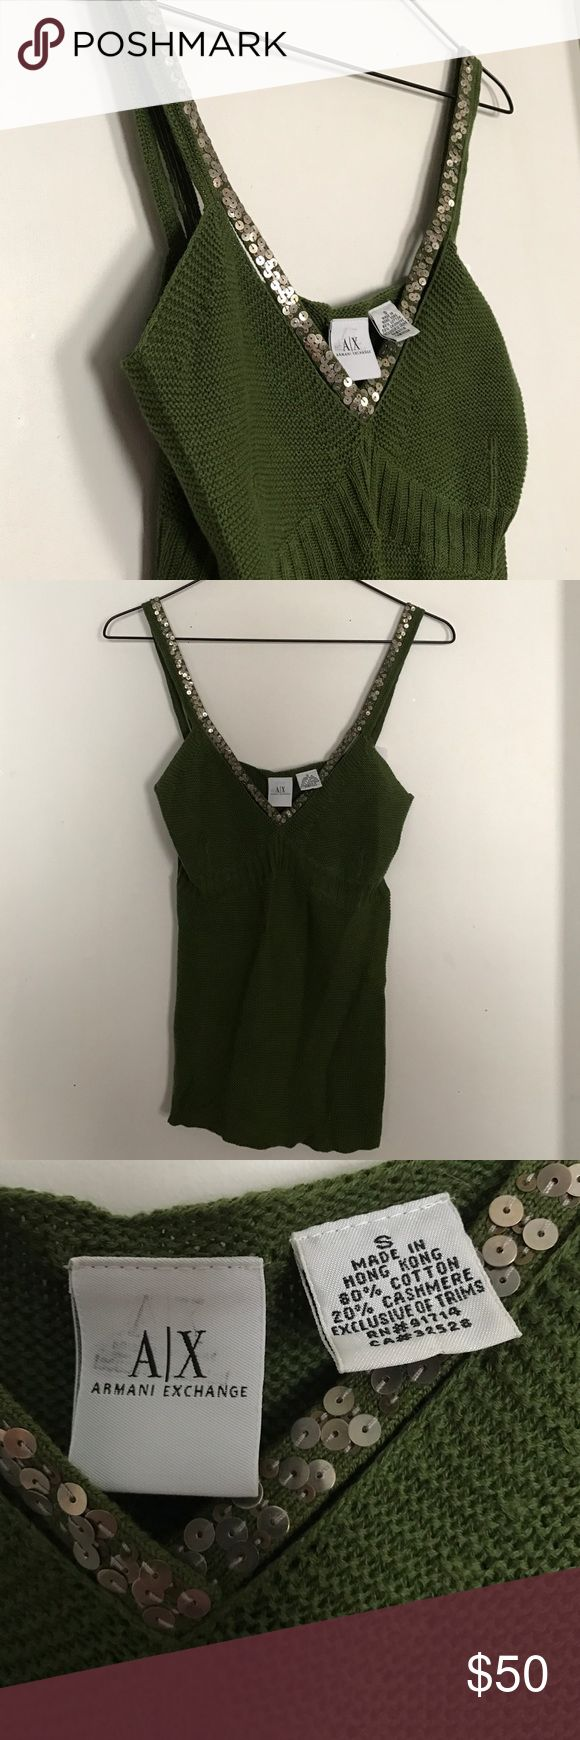 🆕Armani exchange huntergreen sequin cashmere top Gorgeous cashmere and cotton blend tank by Armani exchange. Super soft and sexy with jeans and heels for a night out. Color is a Hunter olive green and the sequins are silver A/X Armani Exchange Tops Tank Tops